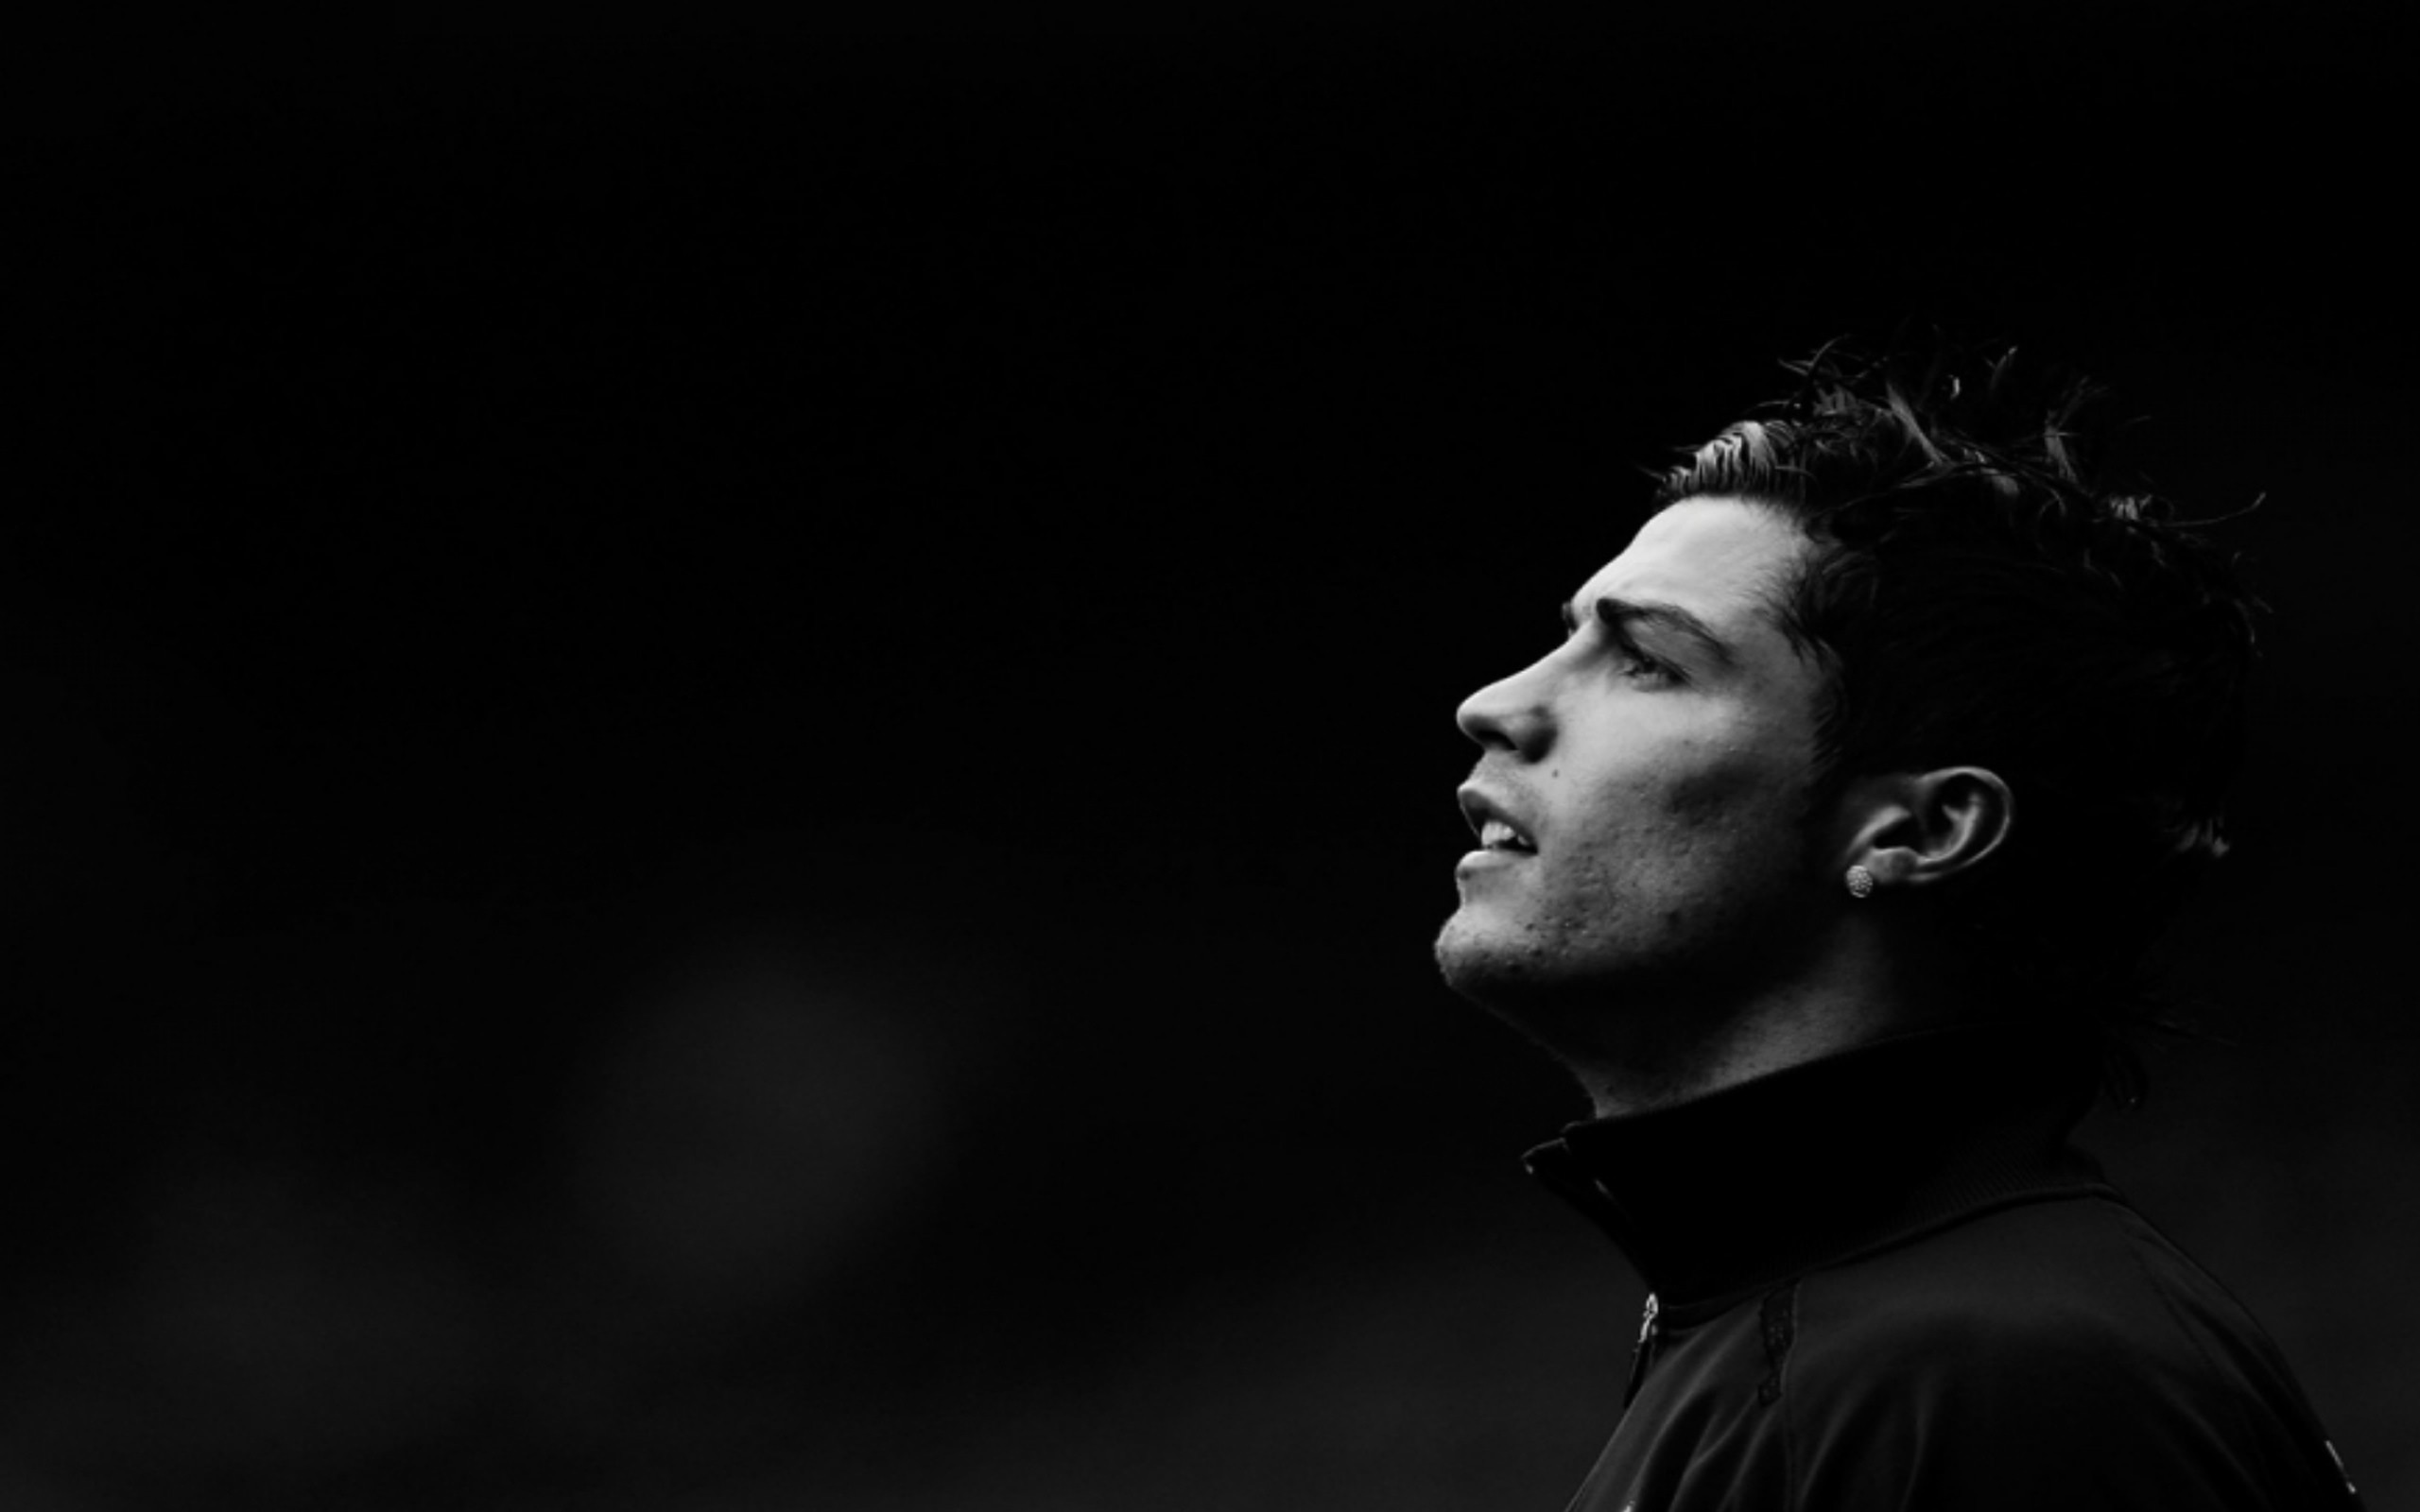 Cristiano Ronaldo's Head black and white wallpaper